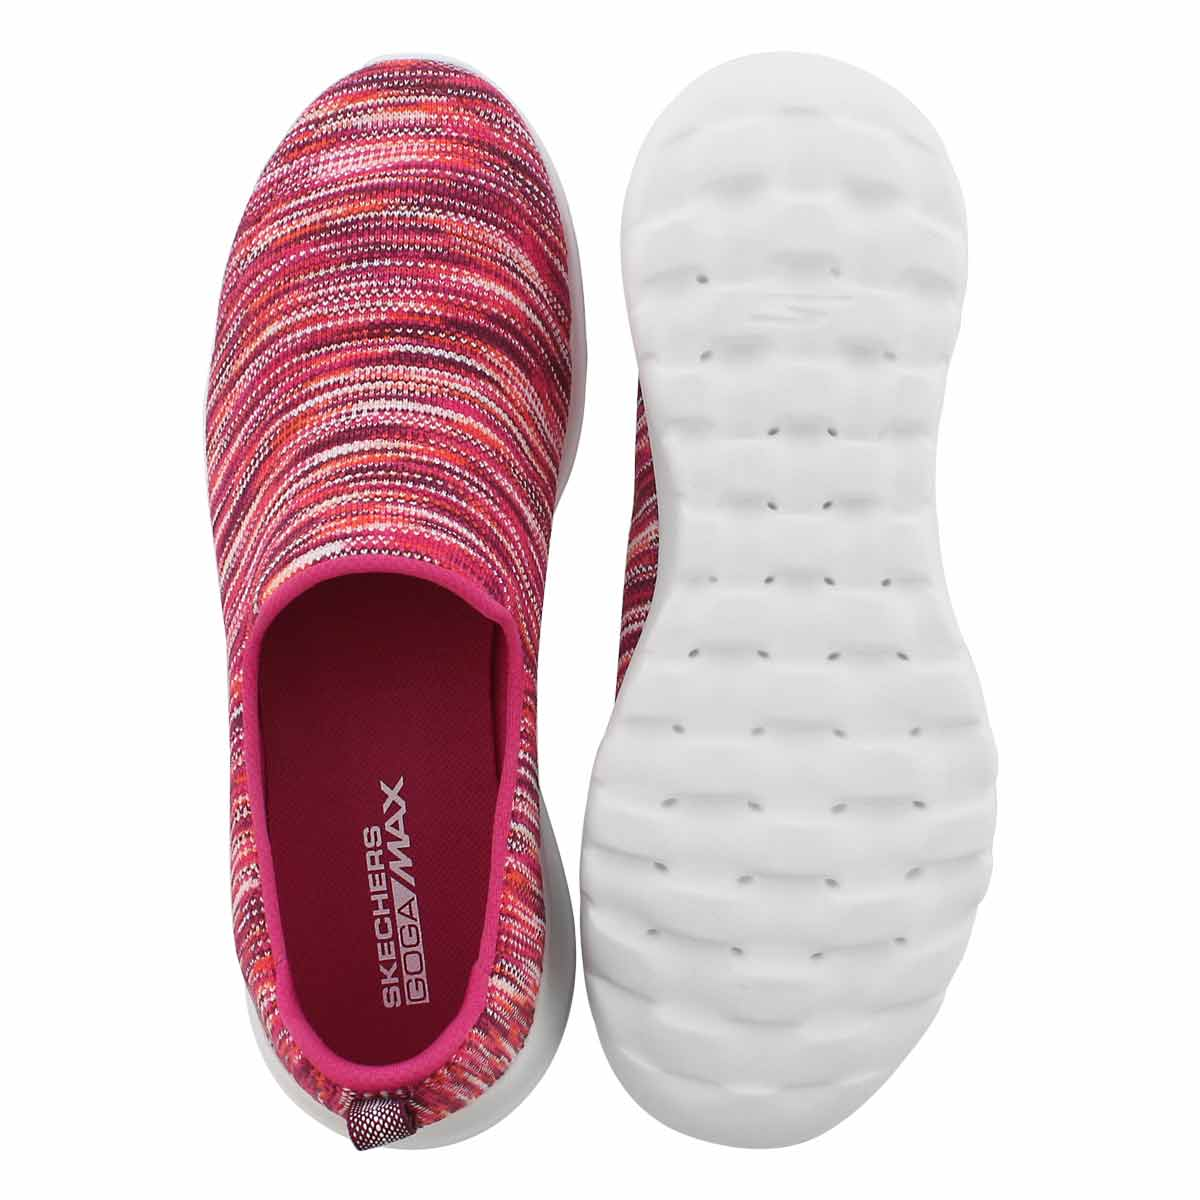 Lds GO Walk Joy pink/multi slip on shoe